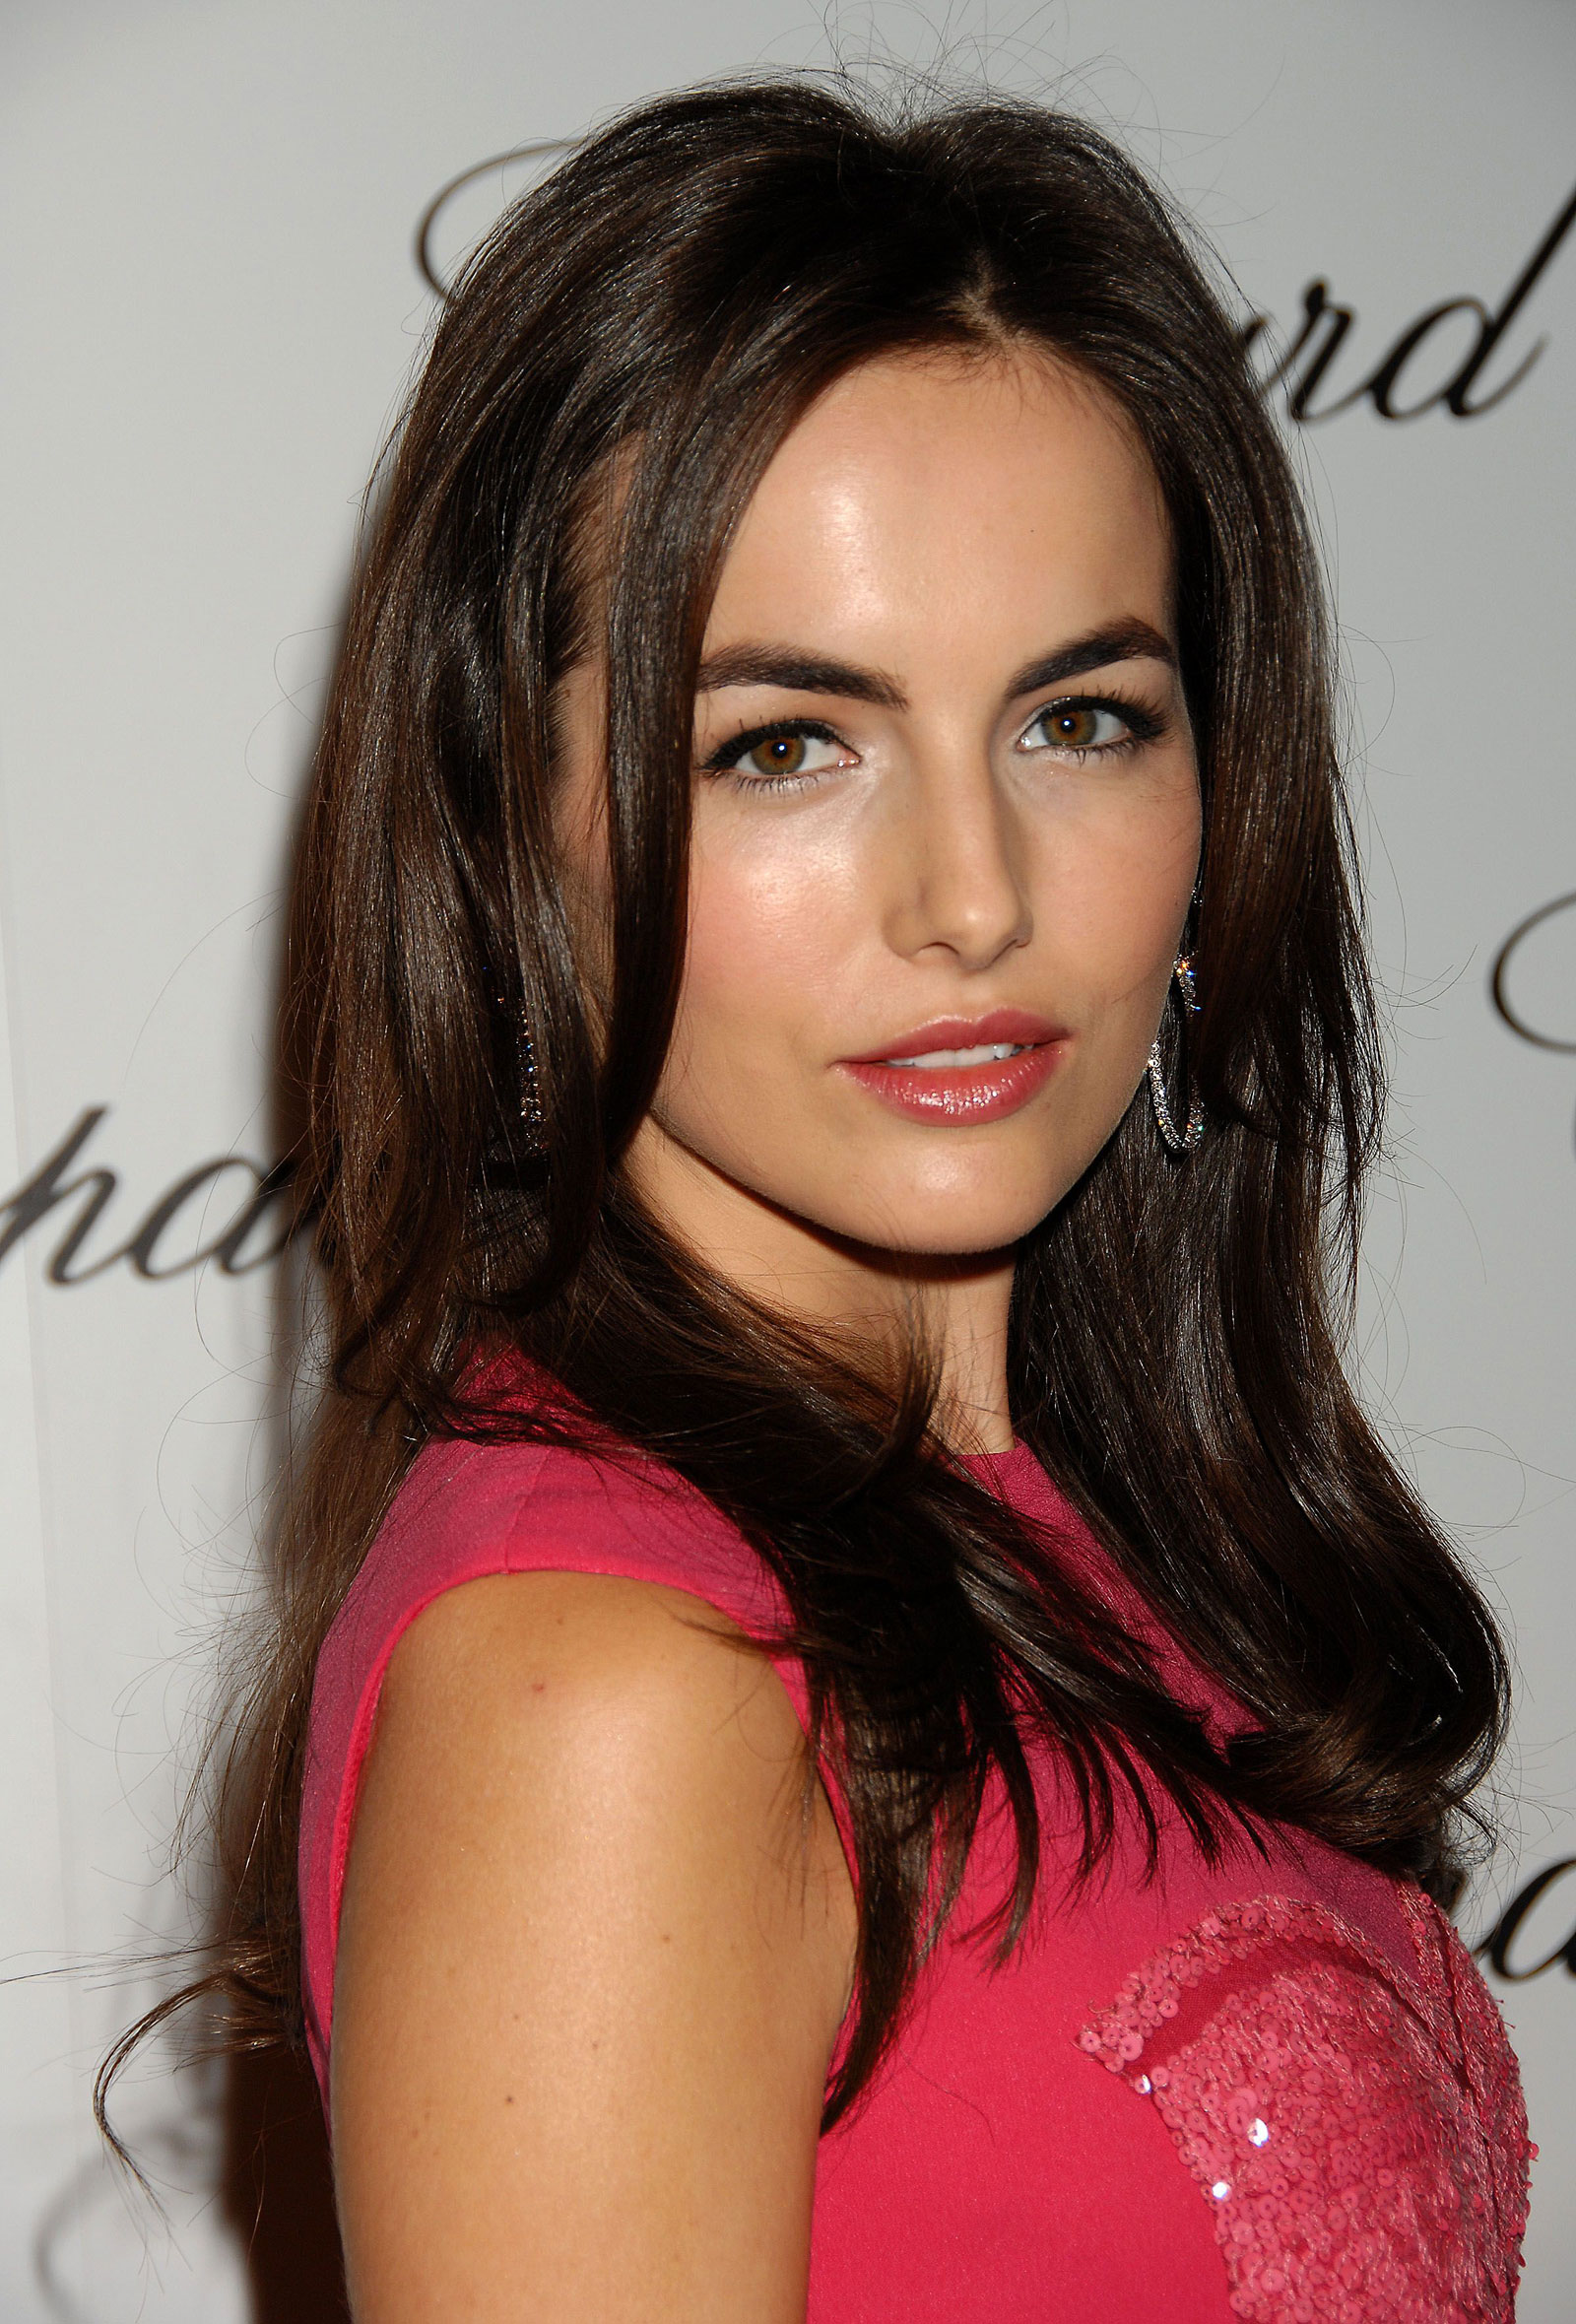 Camilla Belle At Openig Of Chopard Boutique In Costa Mesa